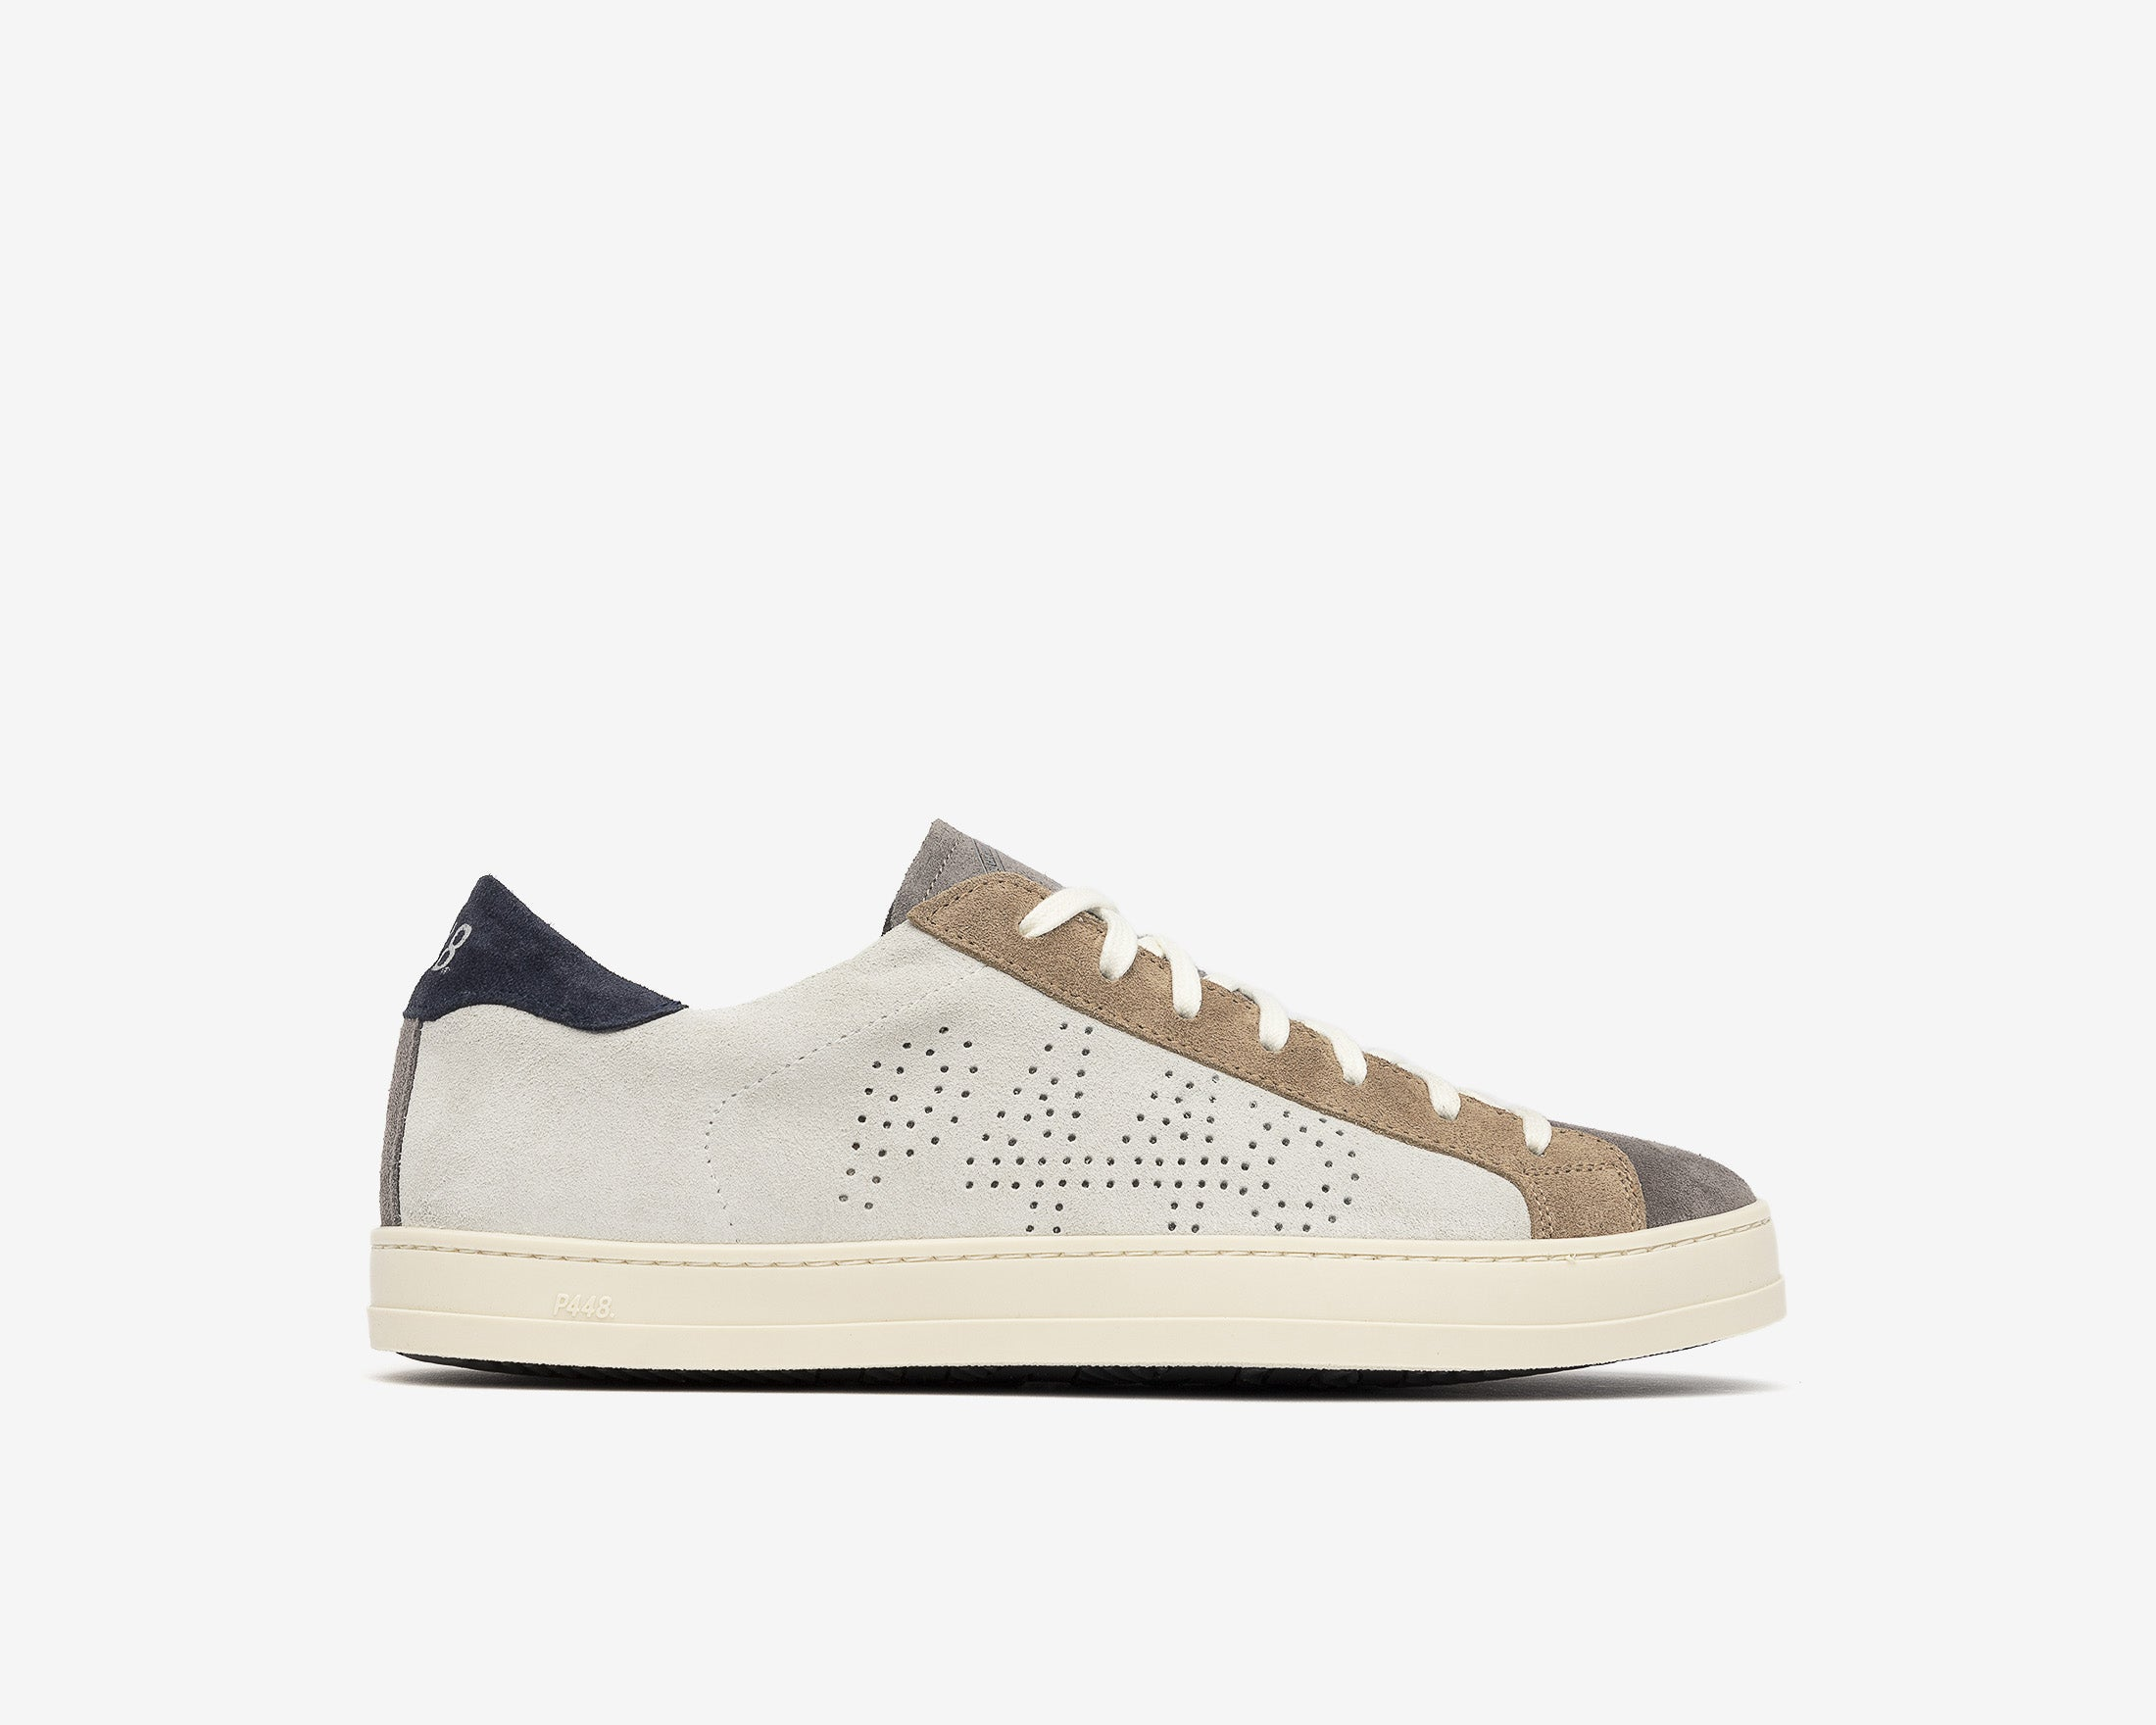 John Low-Top Sneaker in Grey Suede - Profile